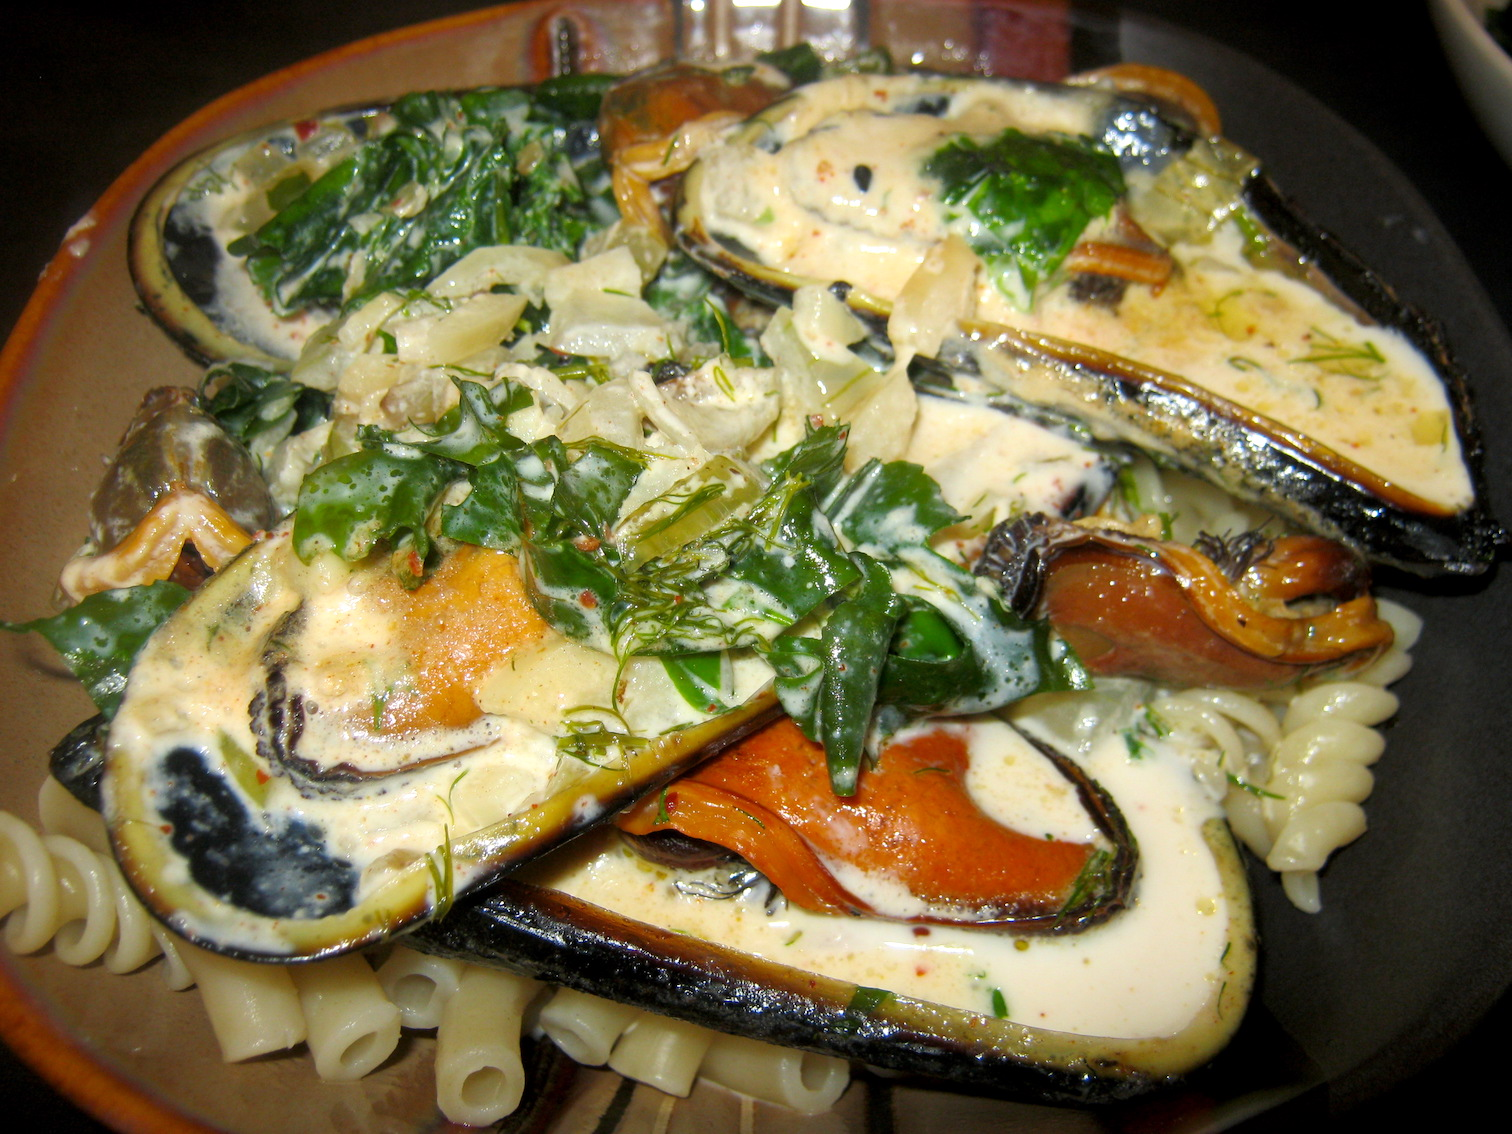 Mussels in sea lettuce cream sauce in a bowl